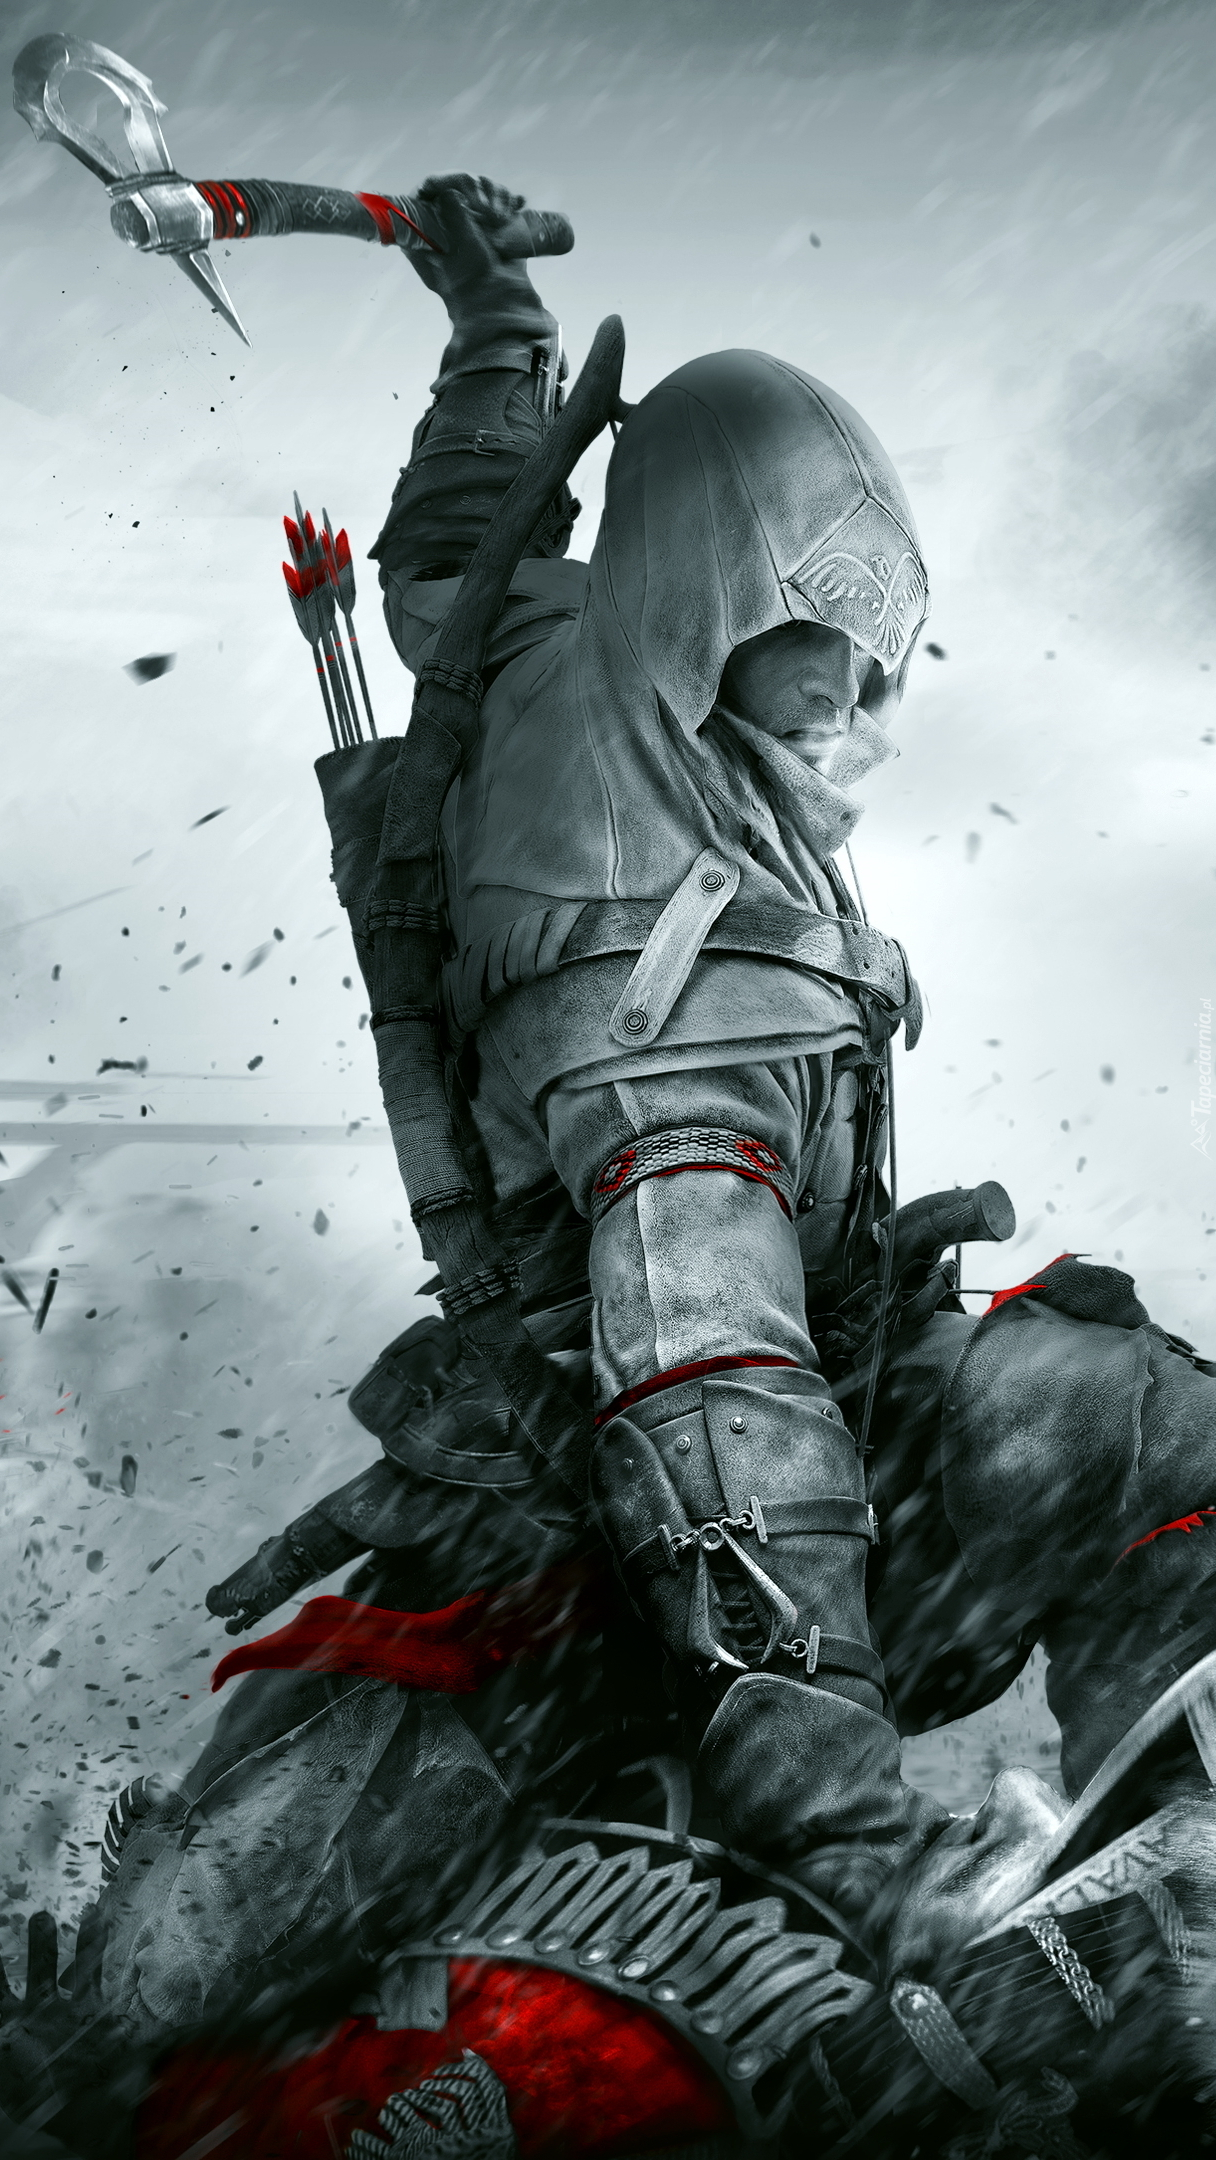 Connor z Assassins Creed III